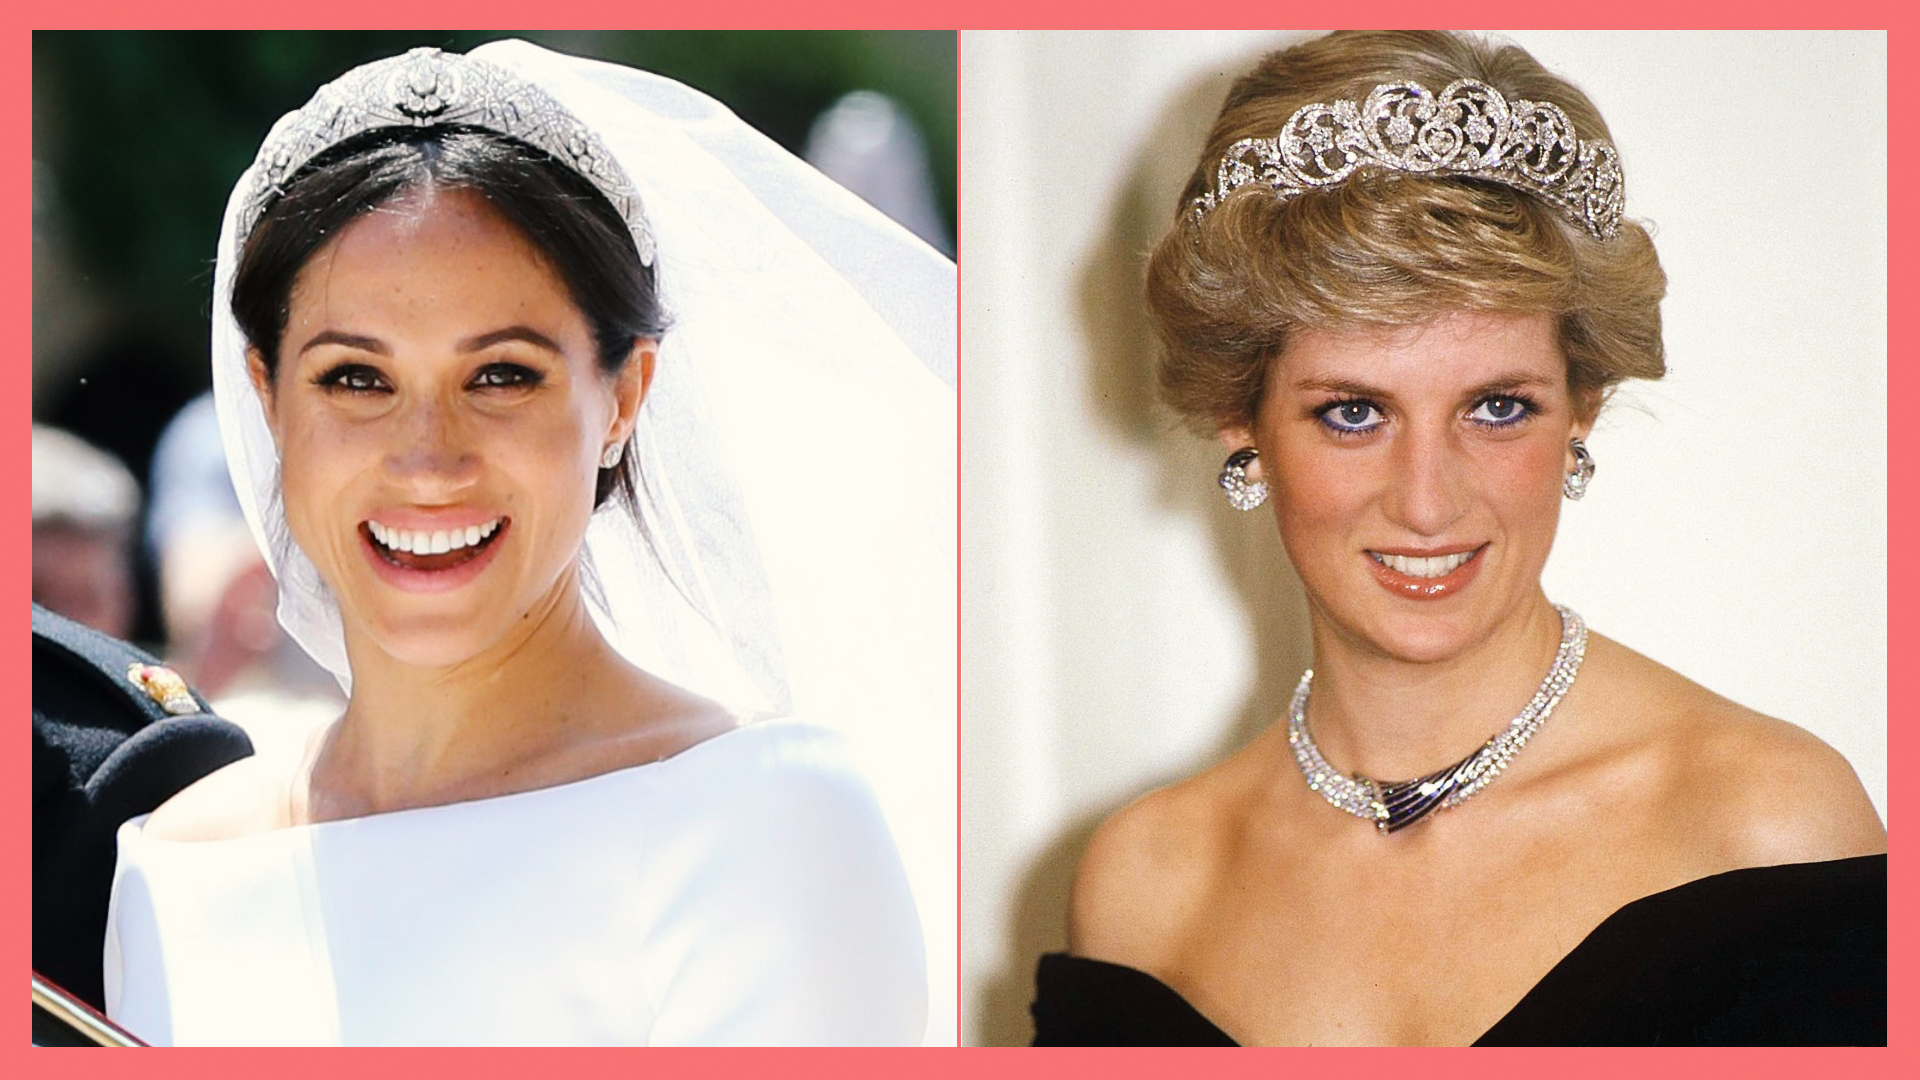 princess diana meghan markle have more in common than you think sheknows princess diana meghan markle have